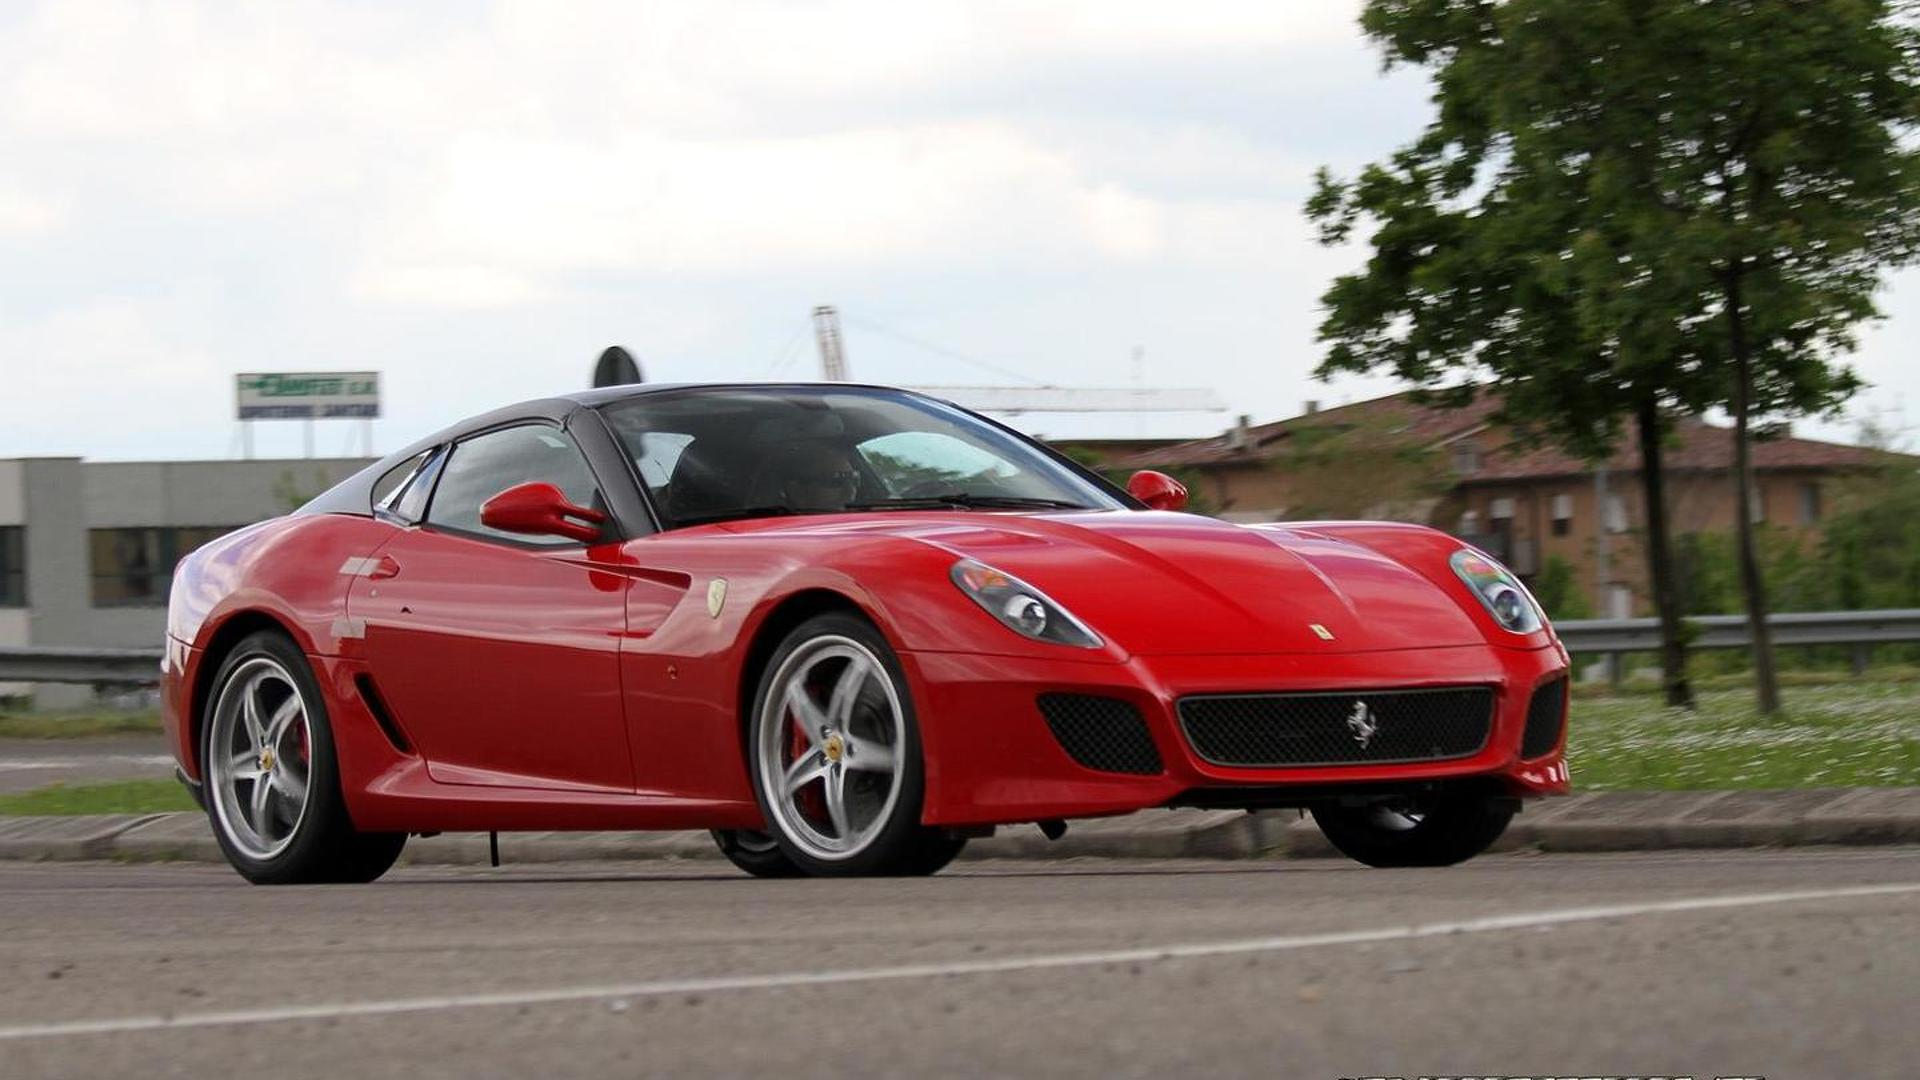 2018 ferrari 599 gto. interesting ferrari on 2018 ferrari 599 gto h